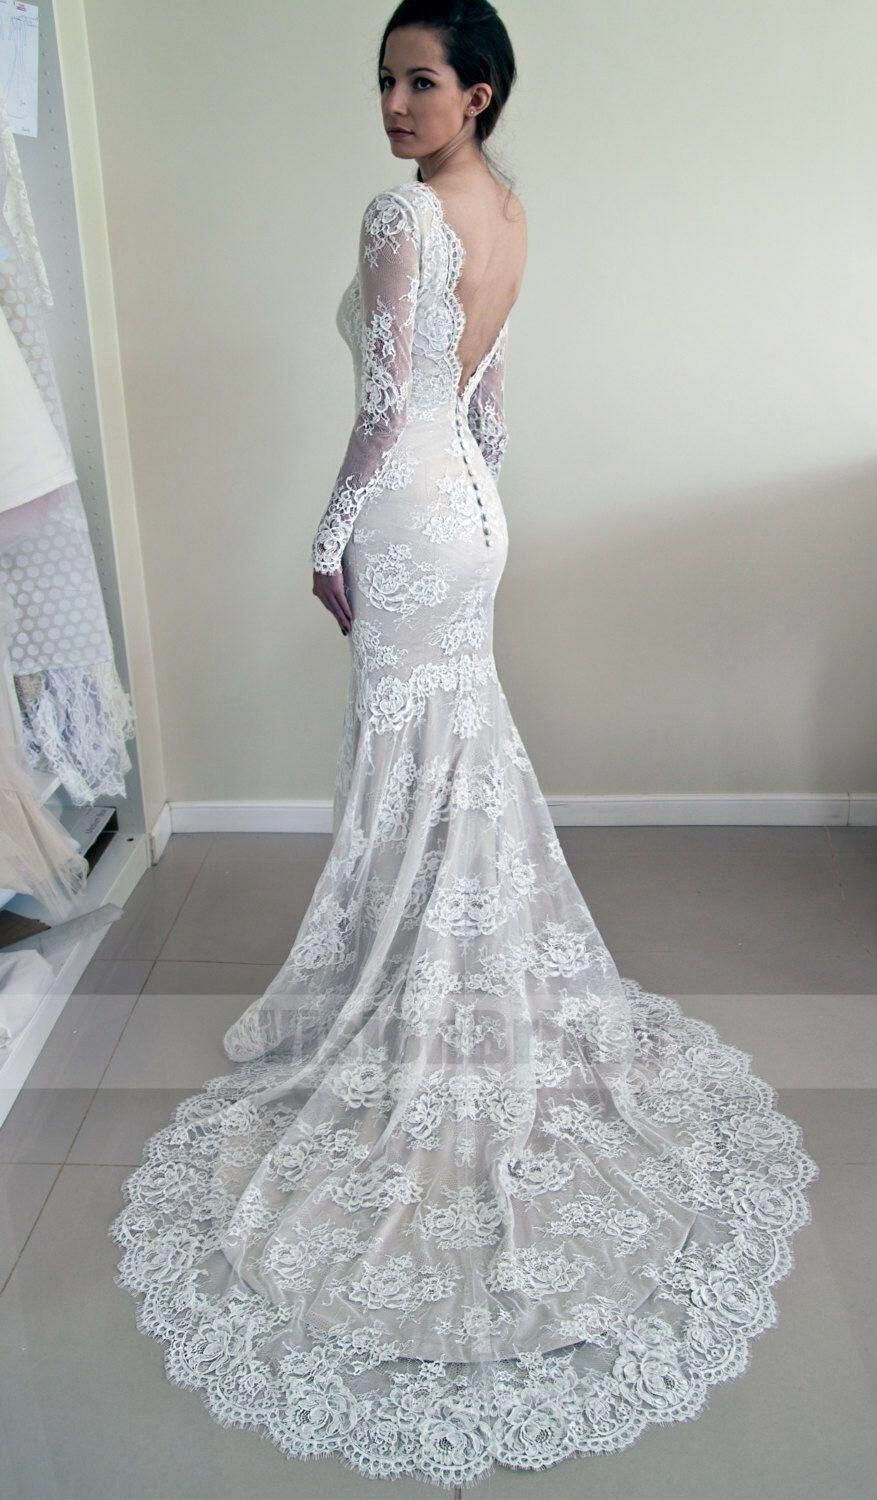 Alluring Scoop Neckline Long Sleeves Lace Mermaid Wedding Lace Mermaid Wedding Dress Long Sleeve Wedding Dress Lace Mermaid Mermaid Wedding Dress With Sleeves